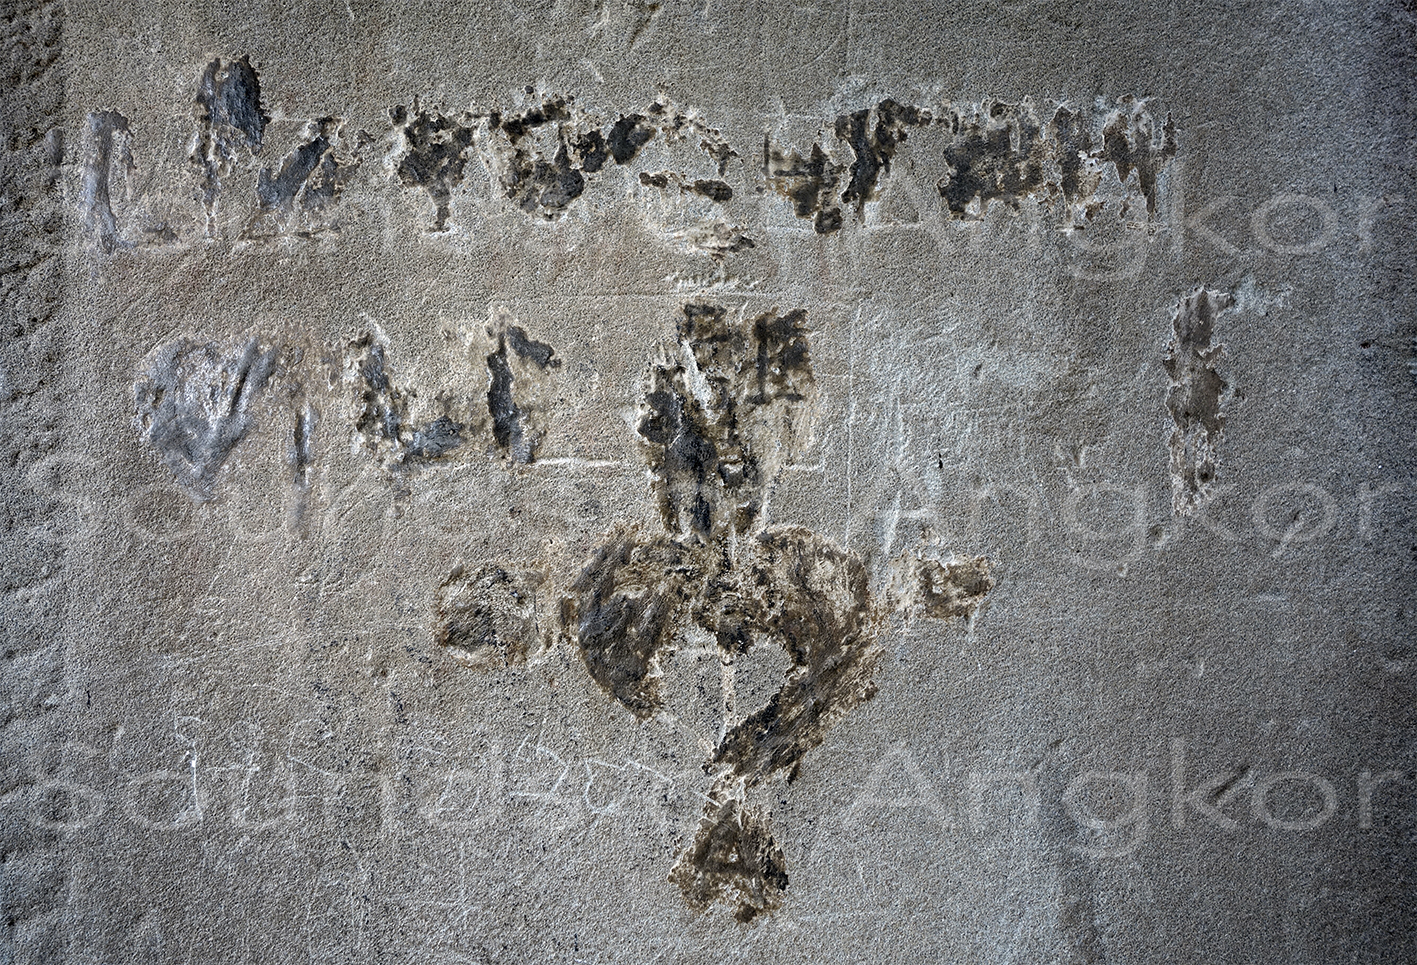 Graffiti below the attested autograph of Émile Gsell where one can read at least LYZ Y GSEL.